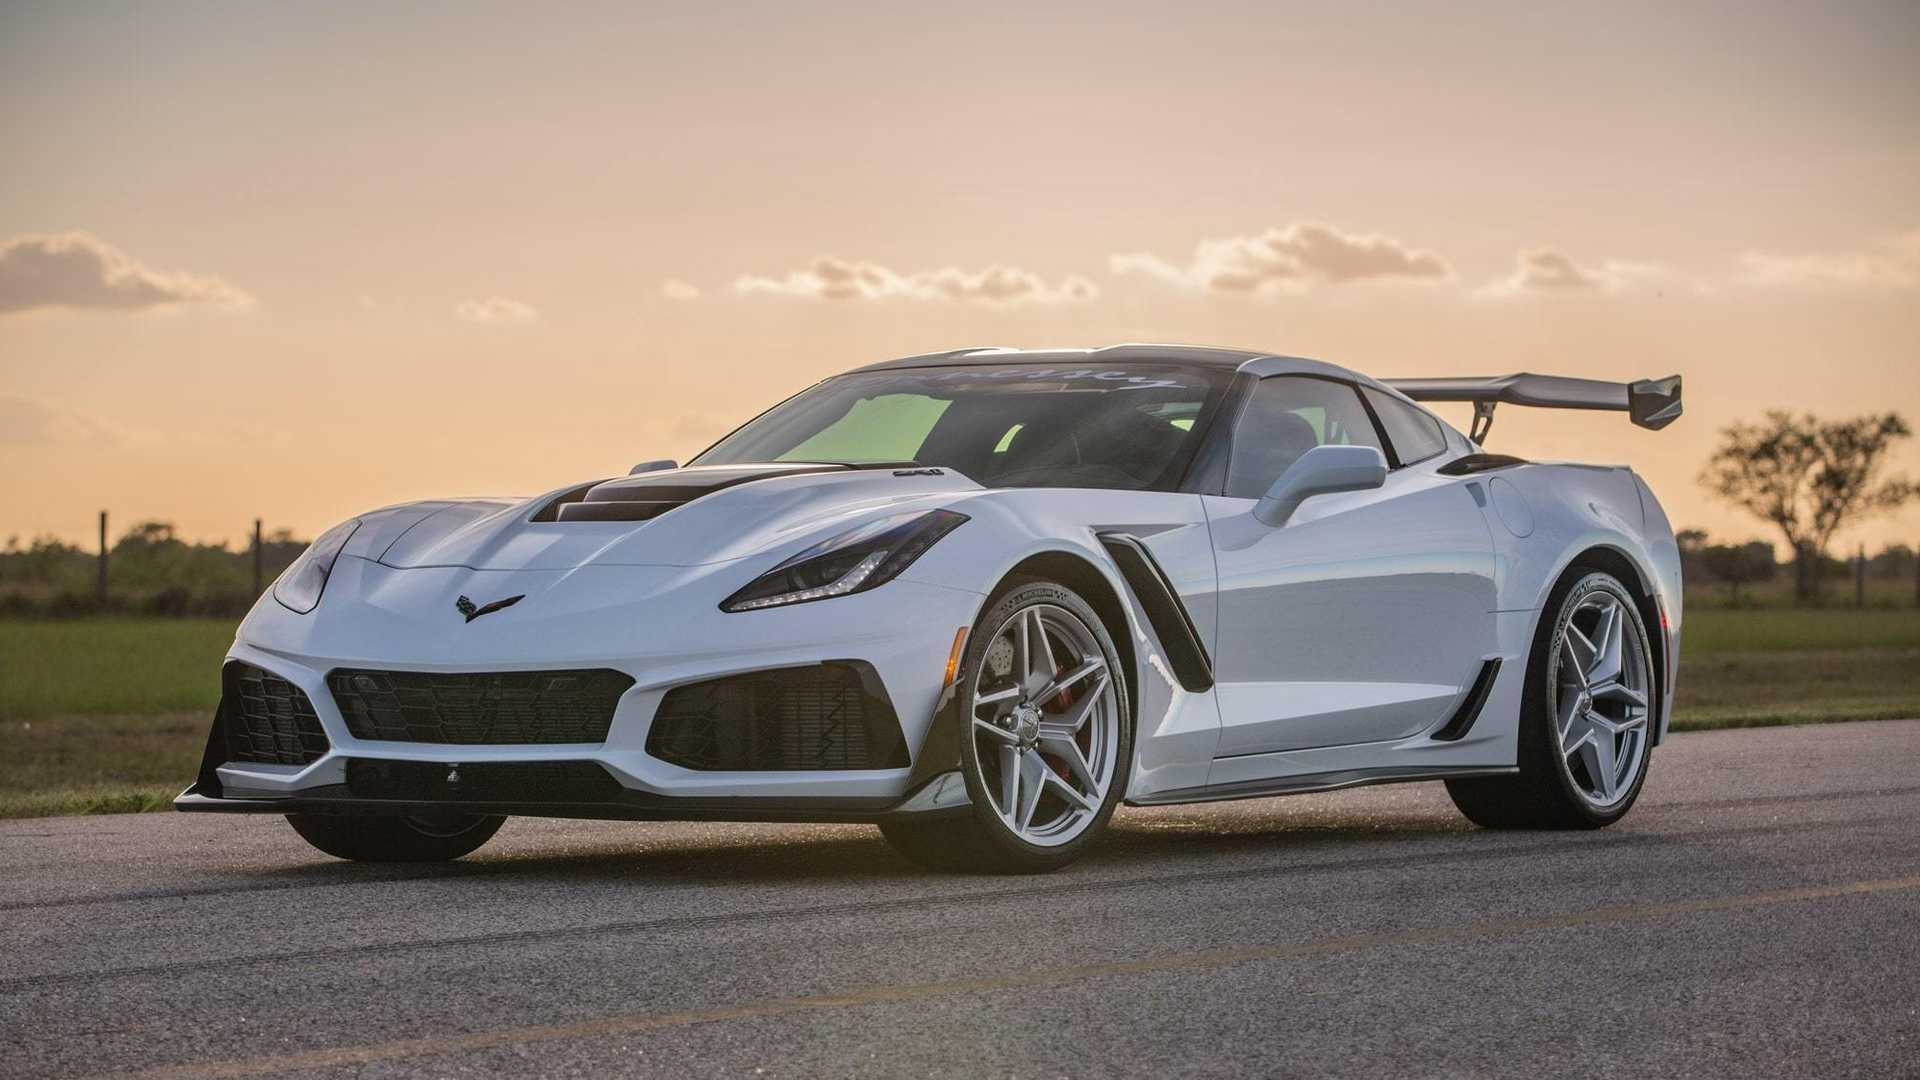 Corvette C7 Zr1 >> Behold The 1 200 Horsepower Chevy Corvette Zr1 From Hennessey